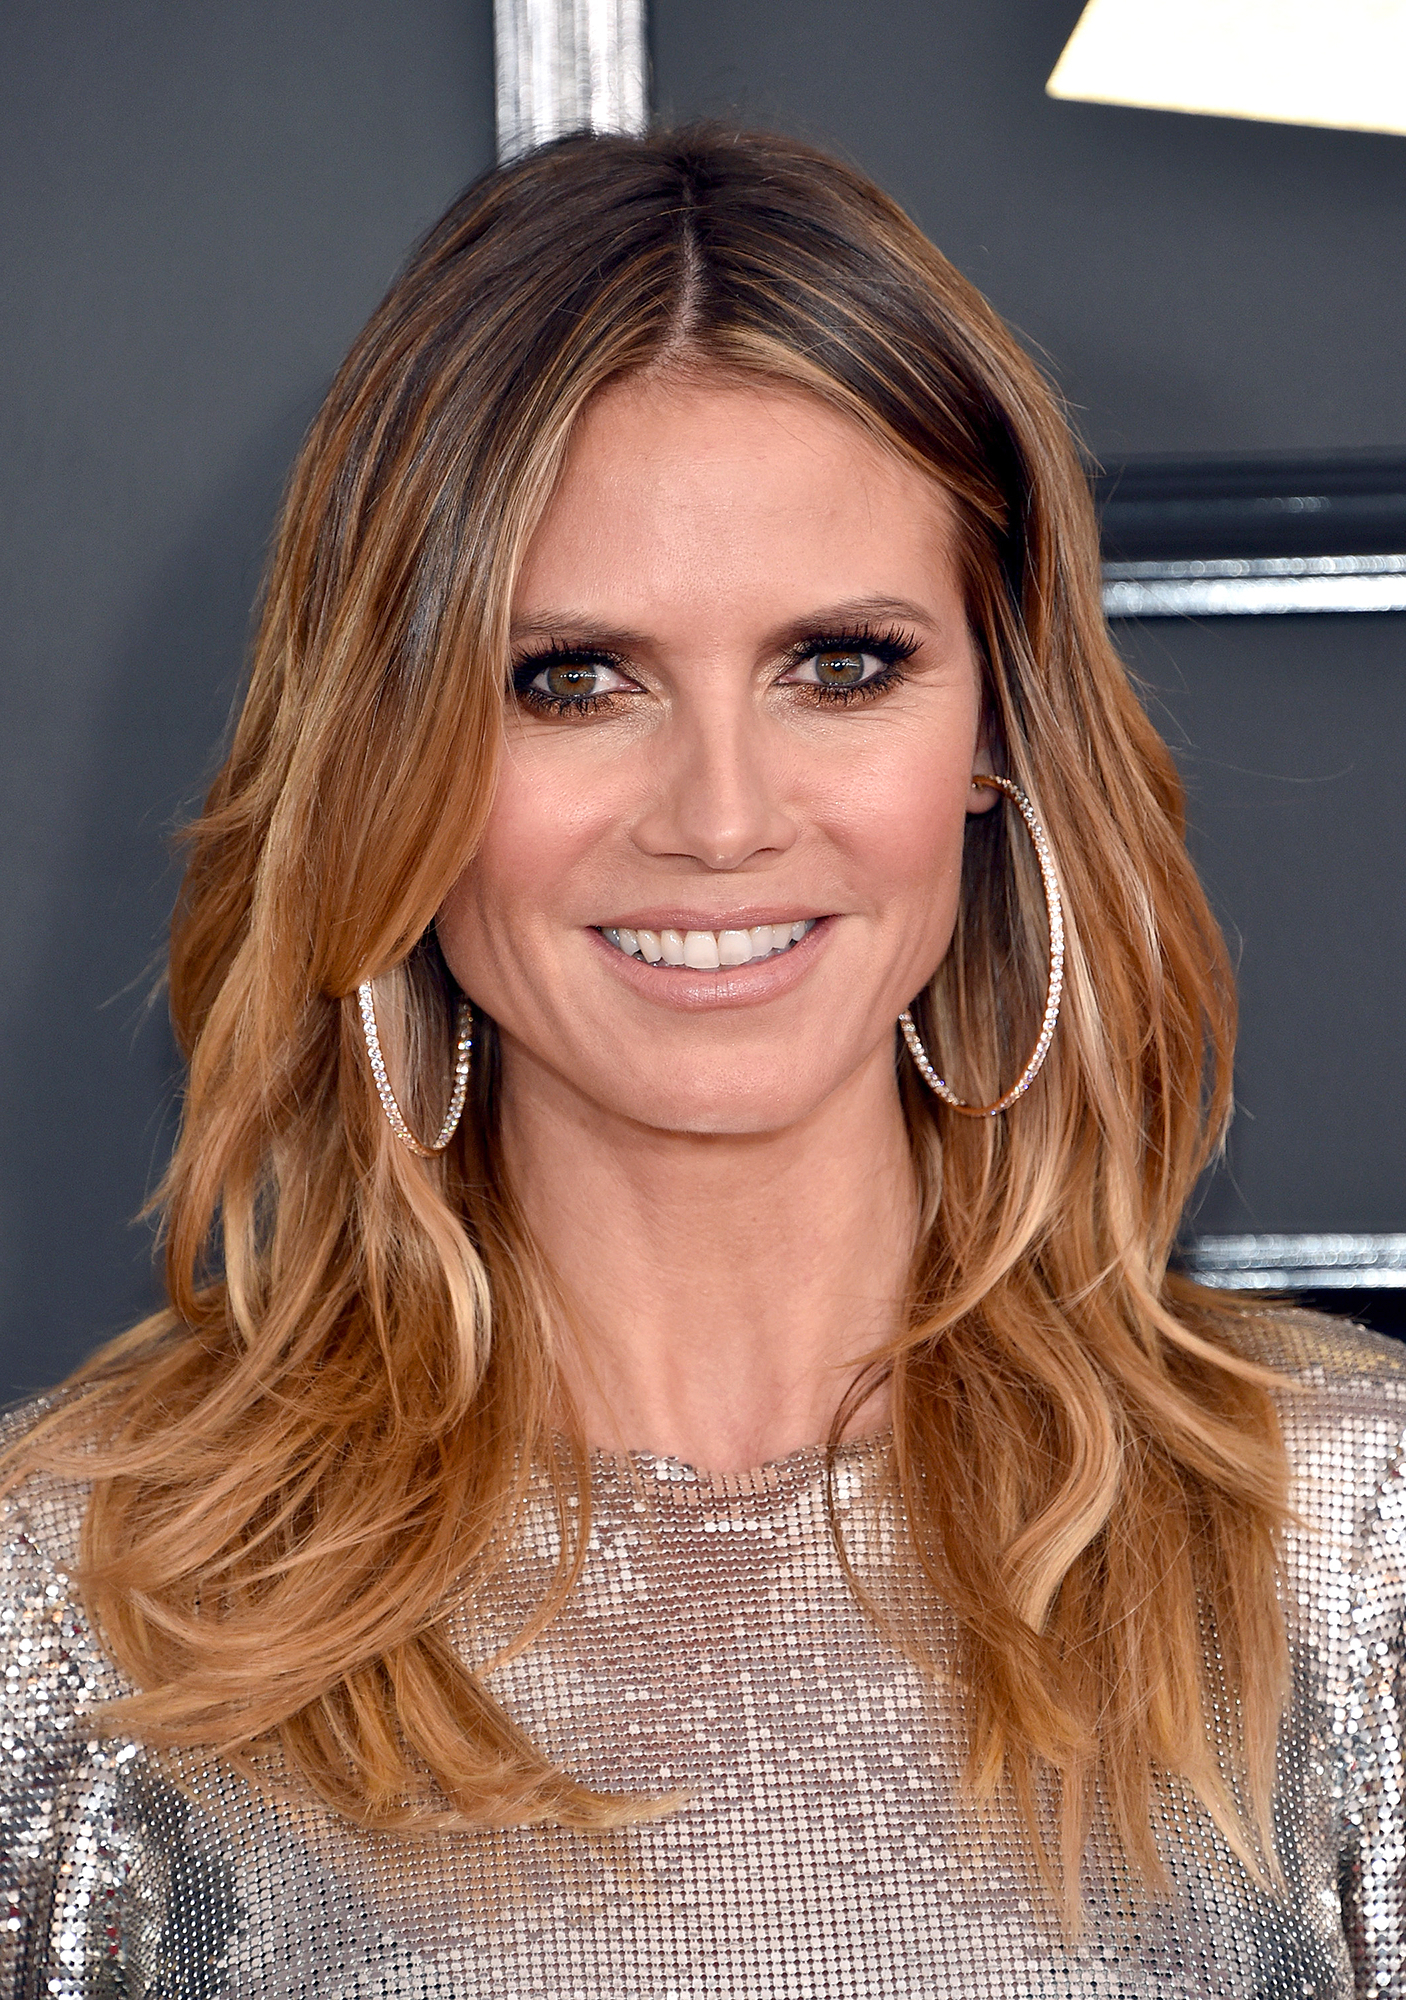 Find Out Full Gallery Of Awesome Heidi Klum Short Hair In Heidi Klum Short Haircuts (View 8 of 25)